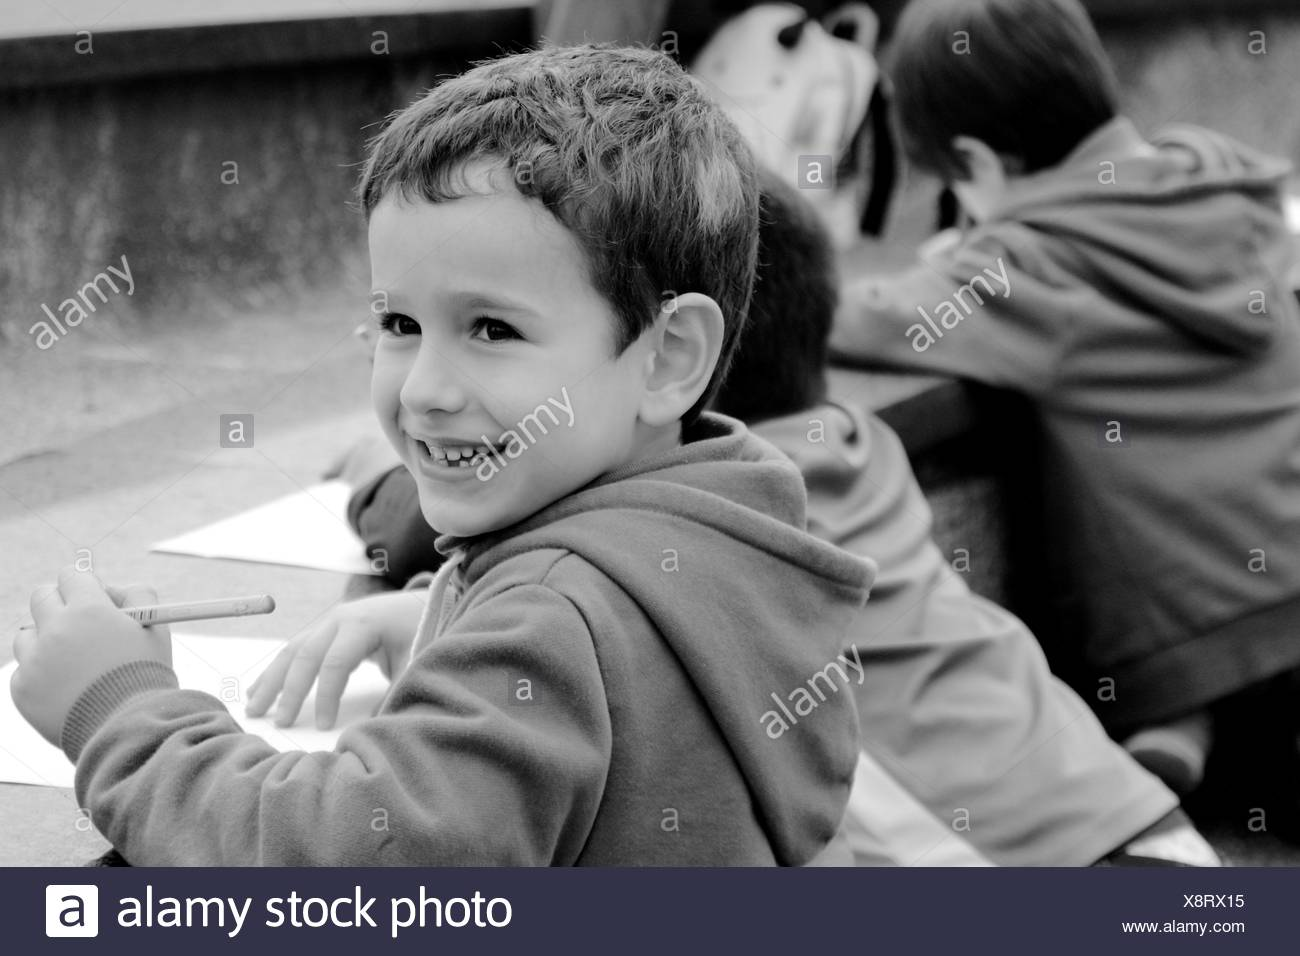 China, Hong Kong Island, Hong Kong, Boy (4-5) smiling while drawing, people in background - Stock Image